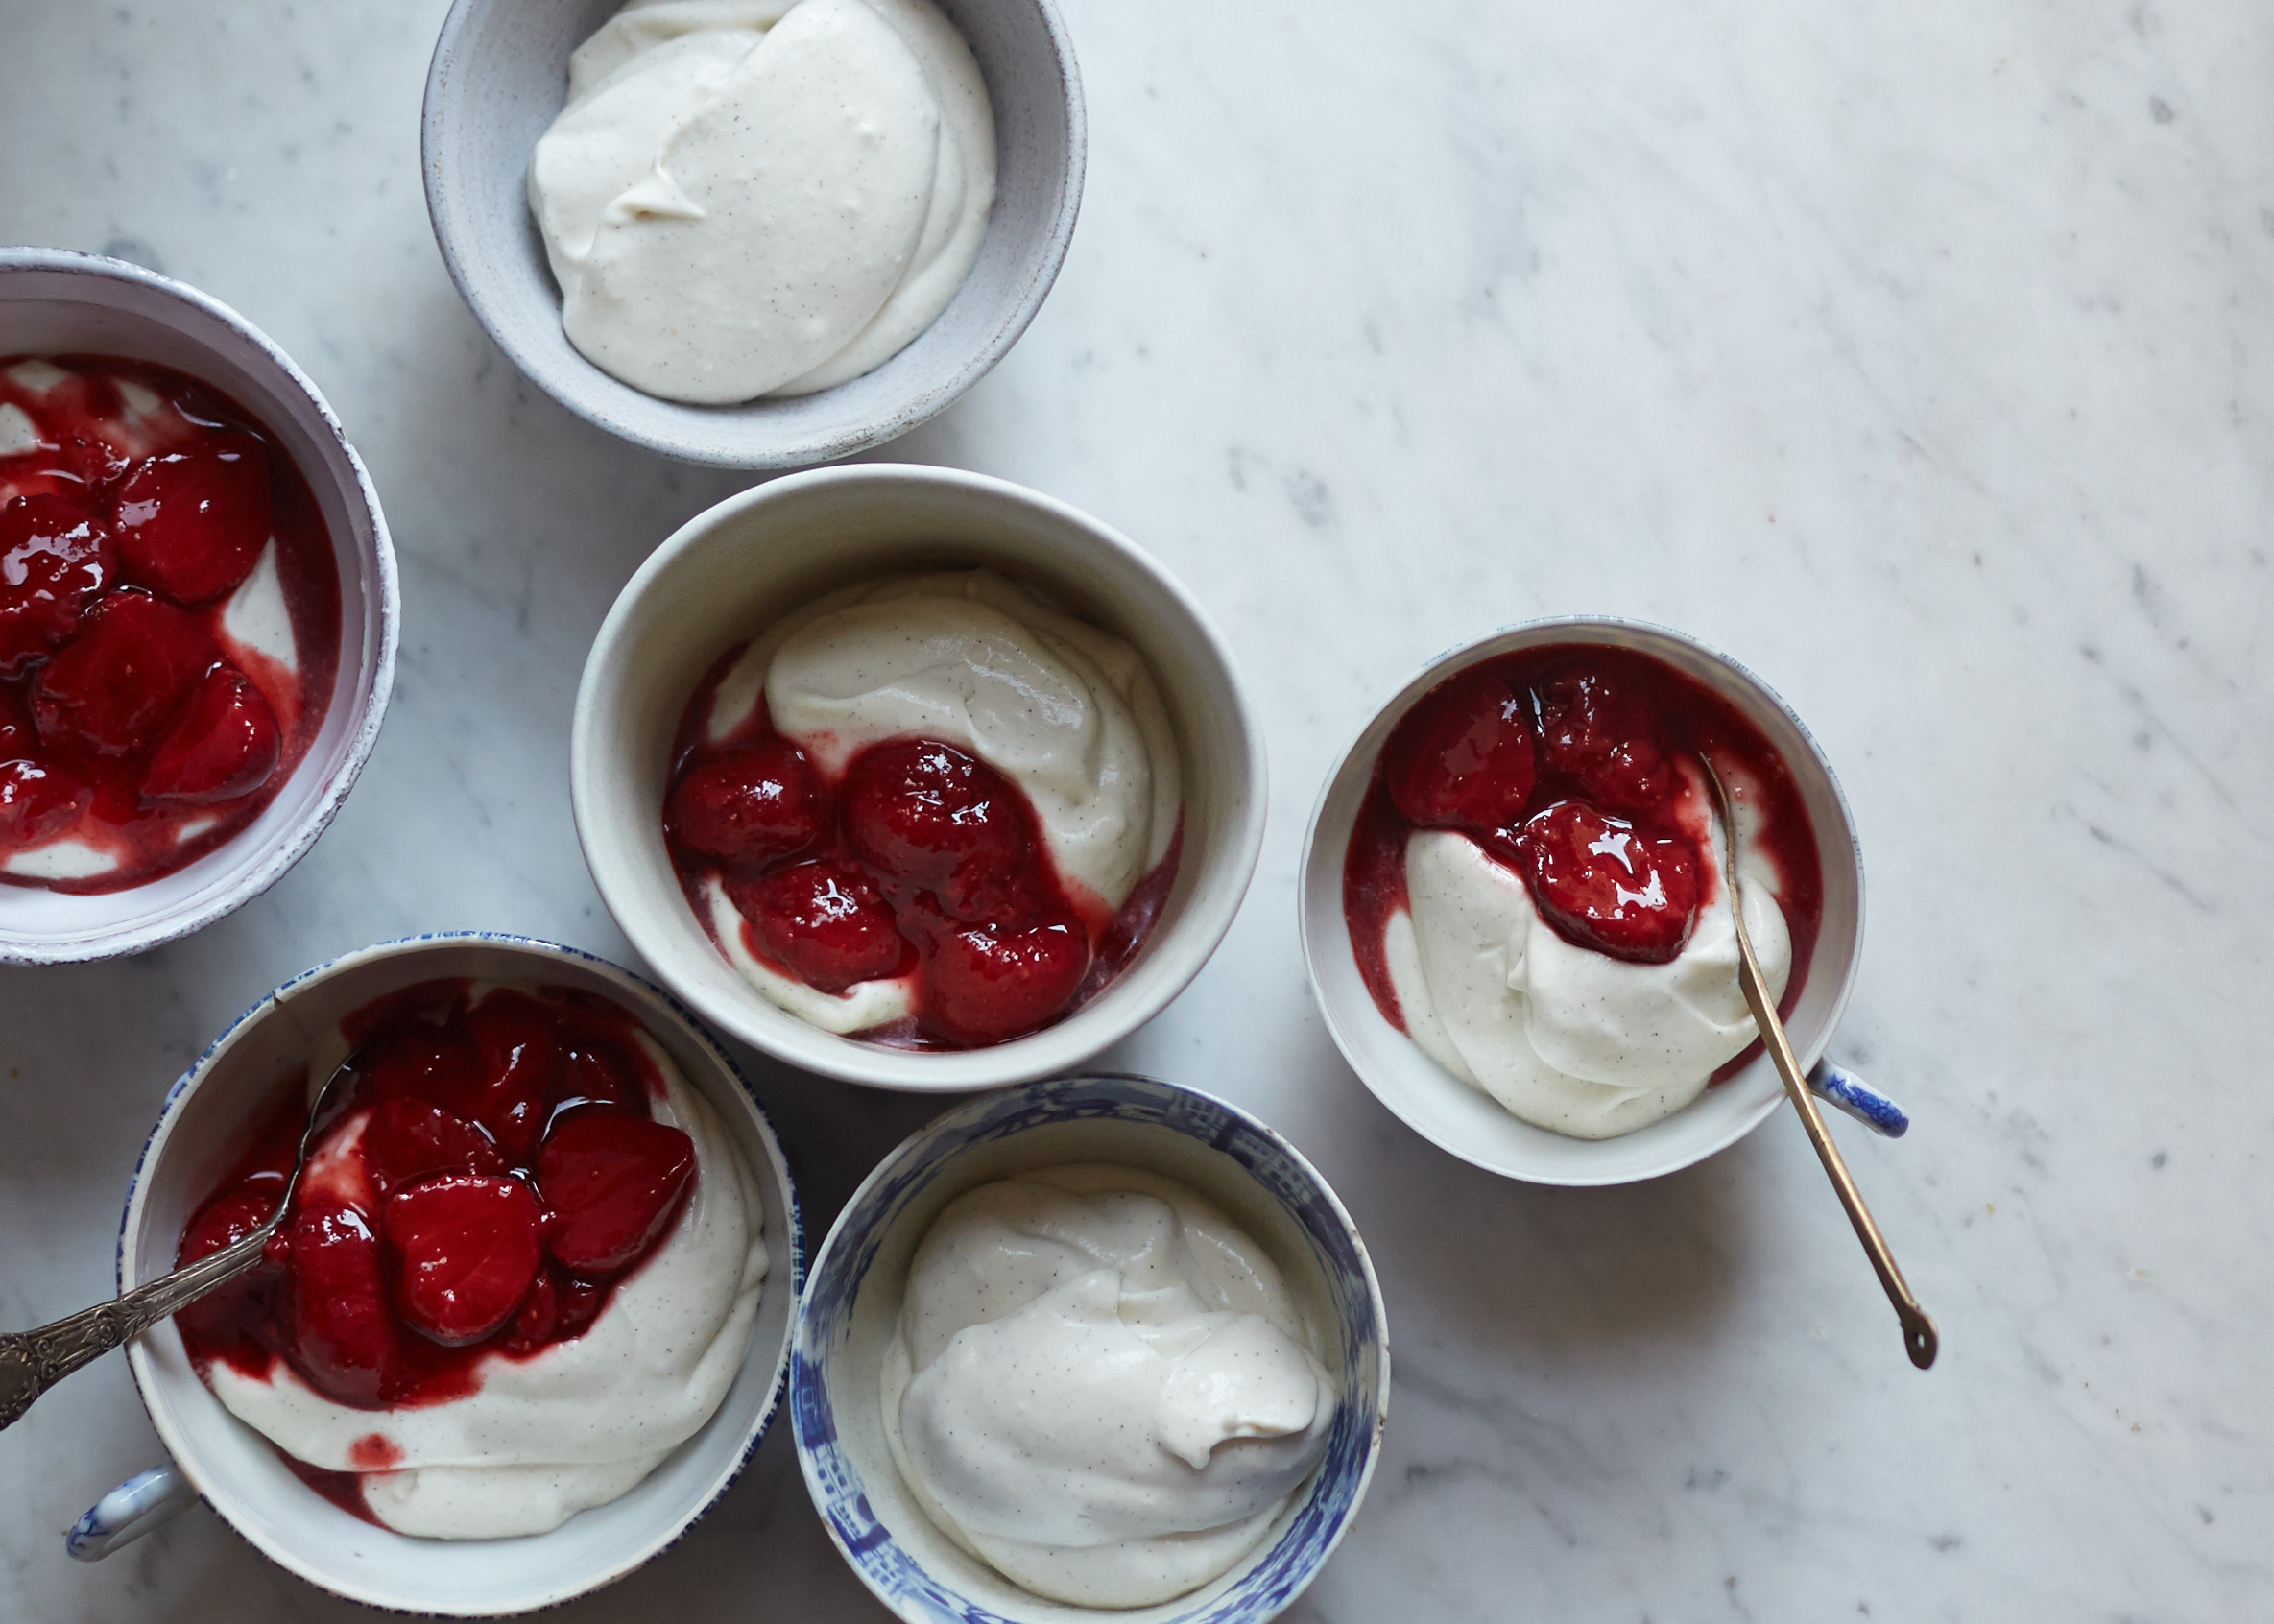 Vegan white chocolate mousse with strawberry compote - Amy Chaplin